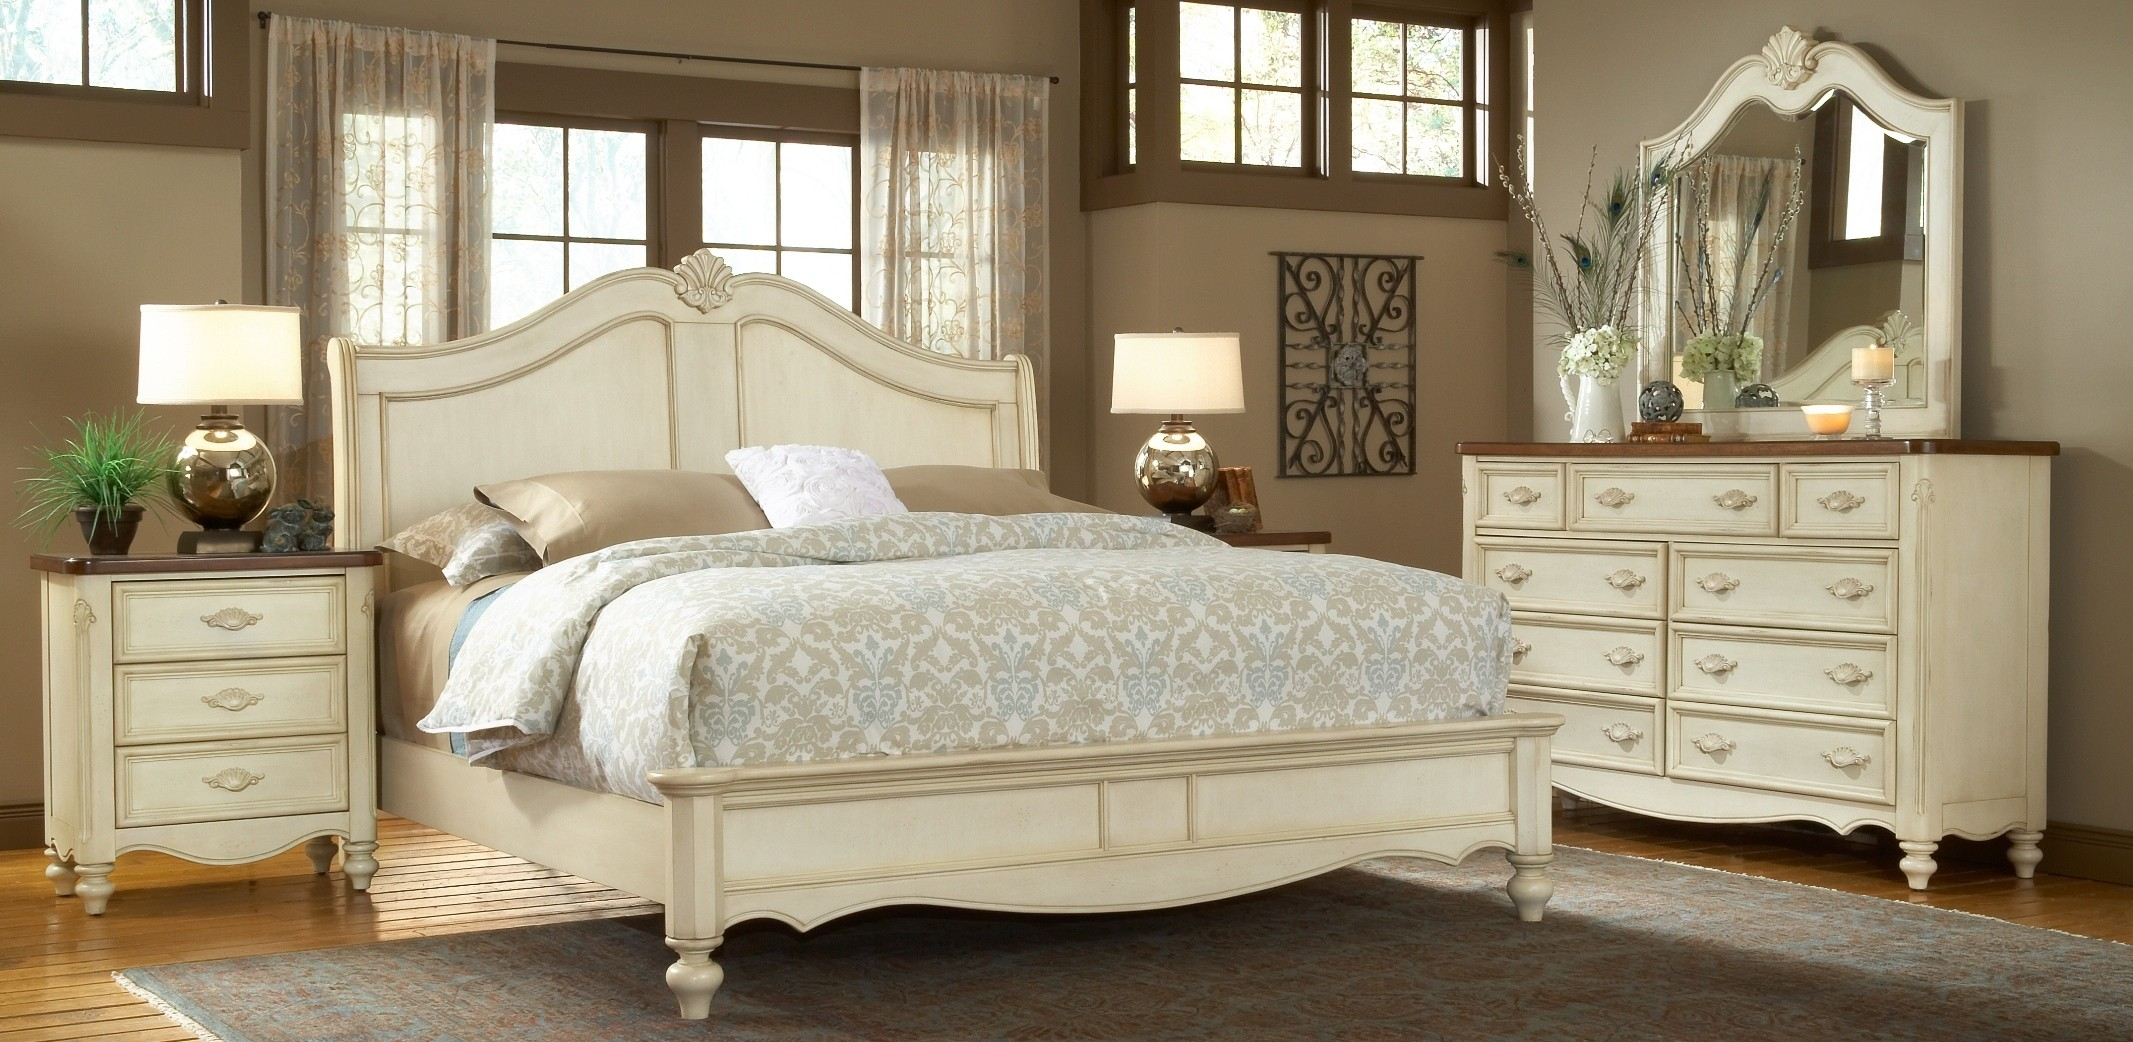 chateau sleigh bedroom set from american woodcrafters